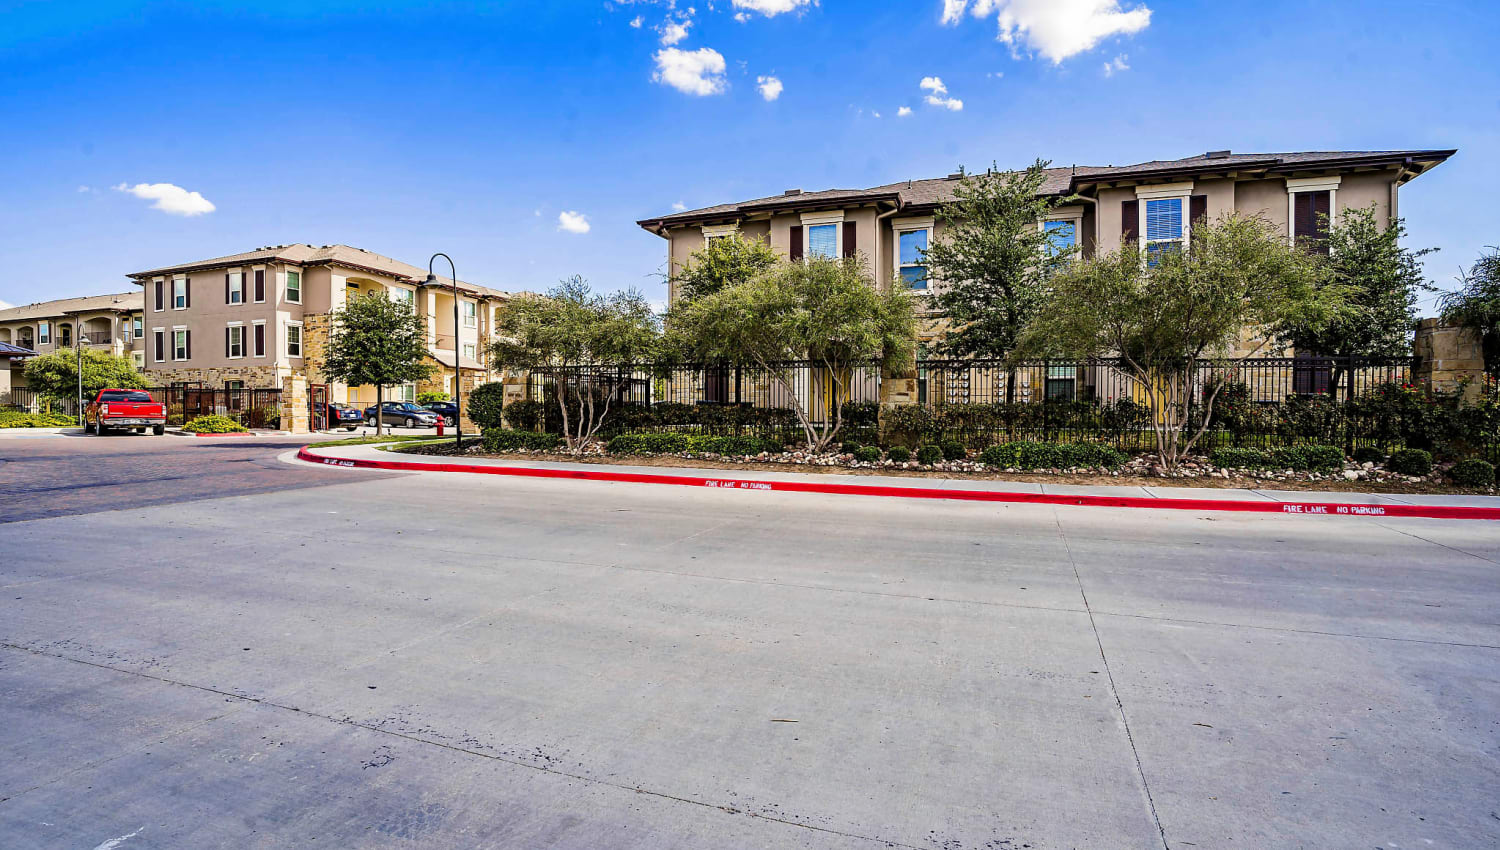 Mature trees and wide driveways throughout the community at Sundance Creek in Midland, Texas